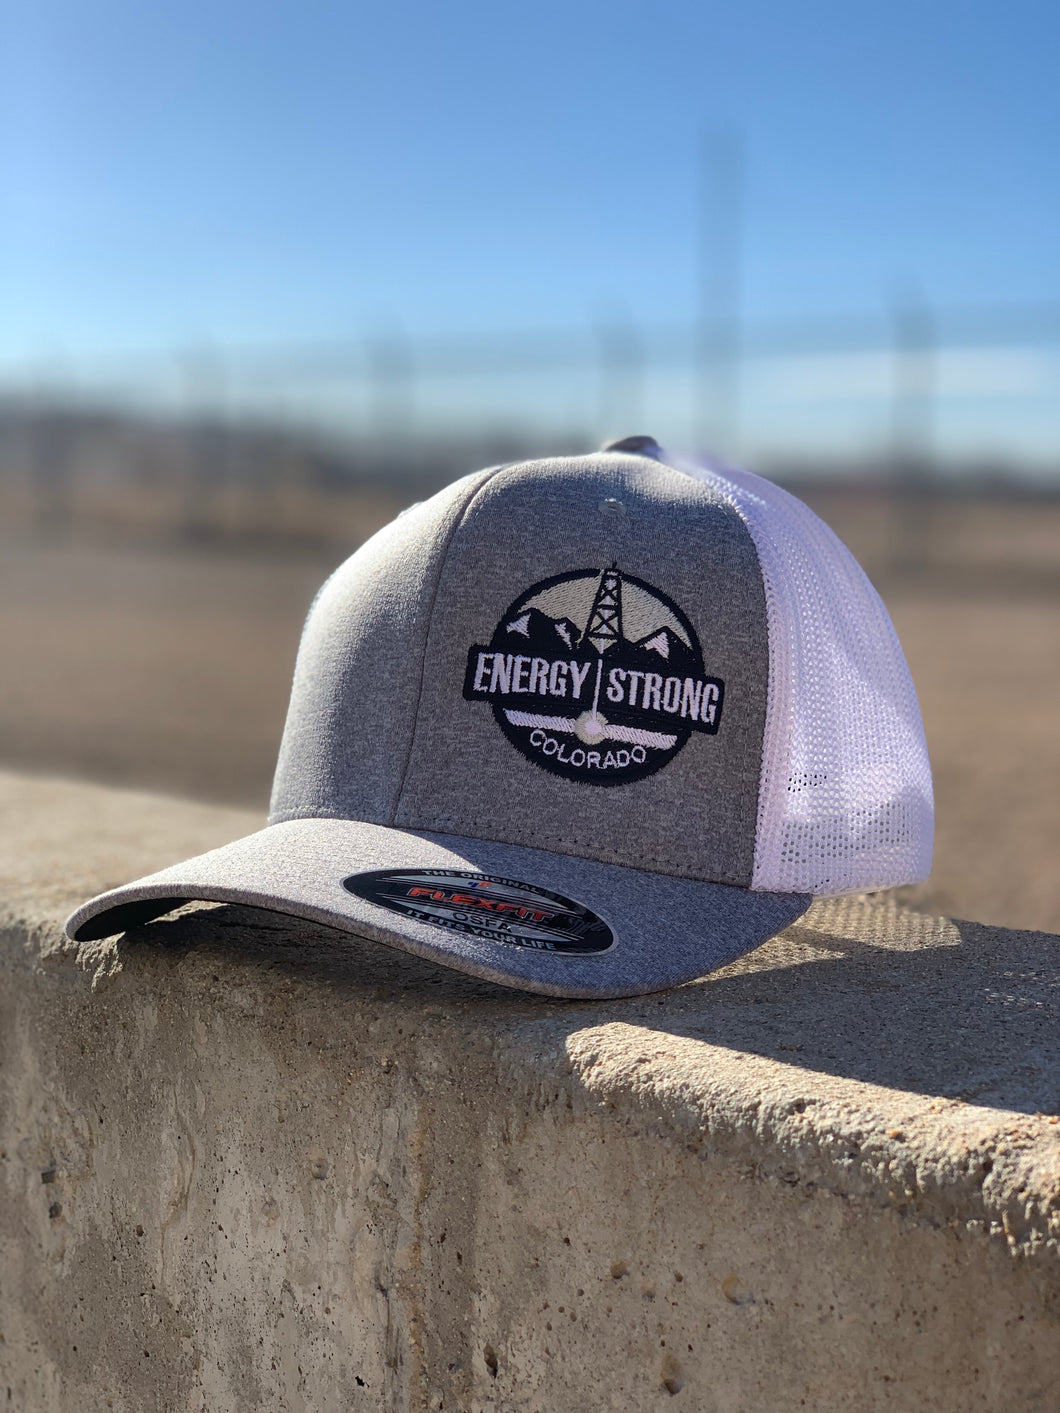 Energy Strong Colorado - Flexfit 6311 Heather Black w/Blacked Out Logo